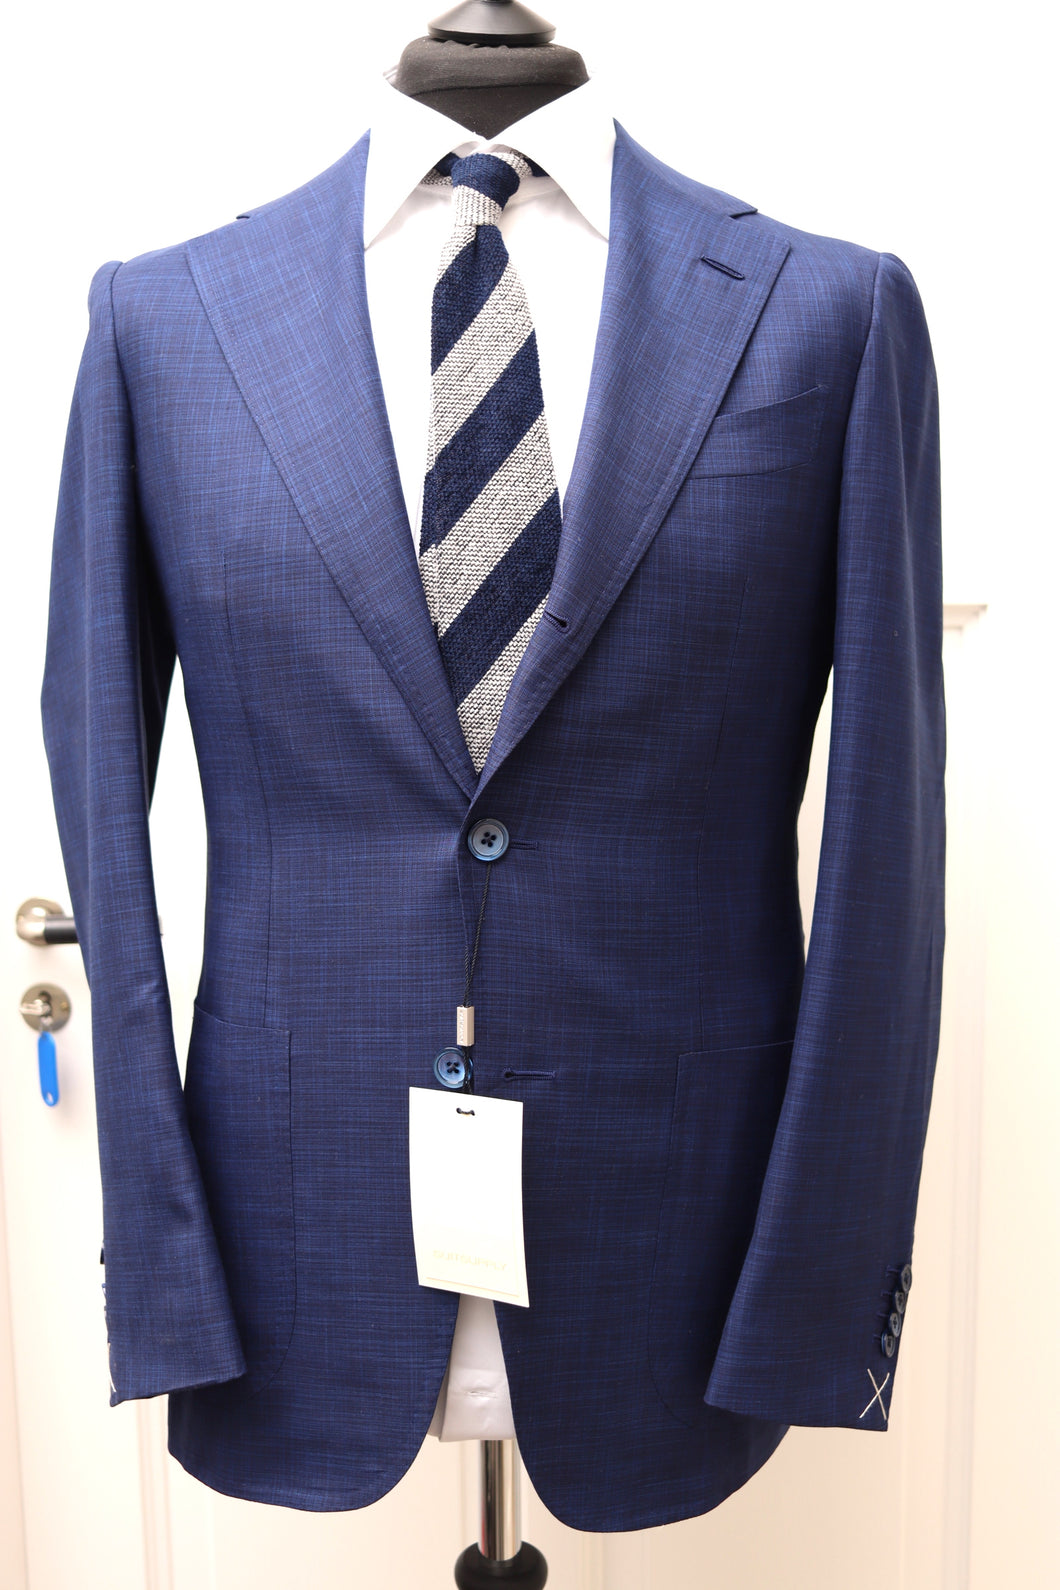 NWT Suitsupply Havana Mid Blue Wool/Silk Check Full Canvas Suit - Size 38R